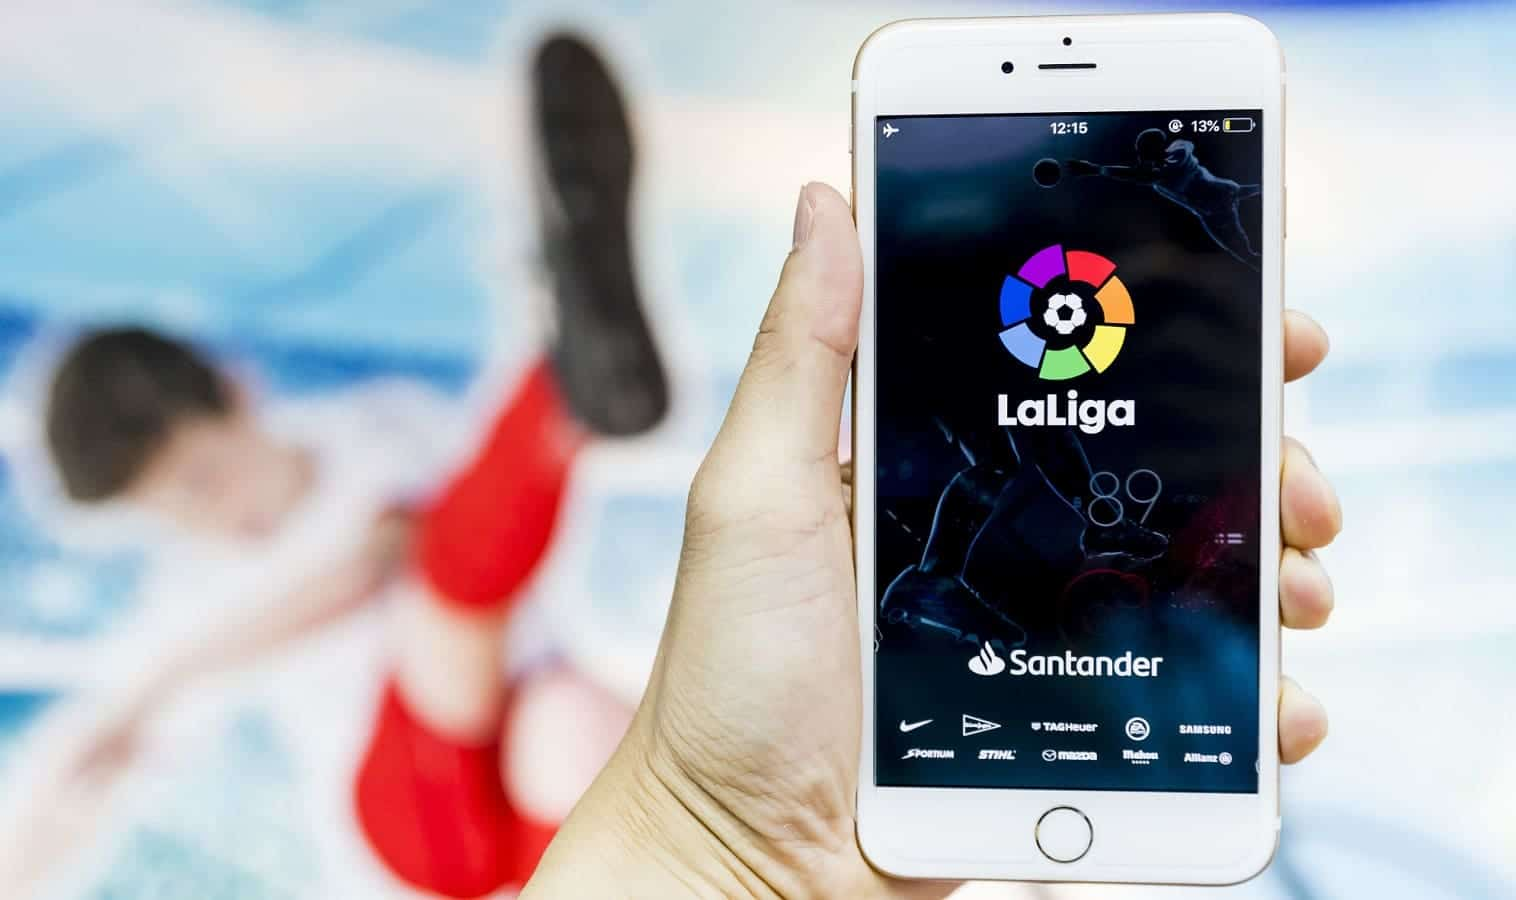 la liga soccer app on phone